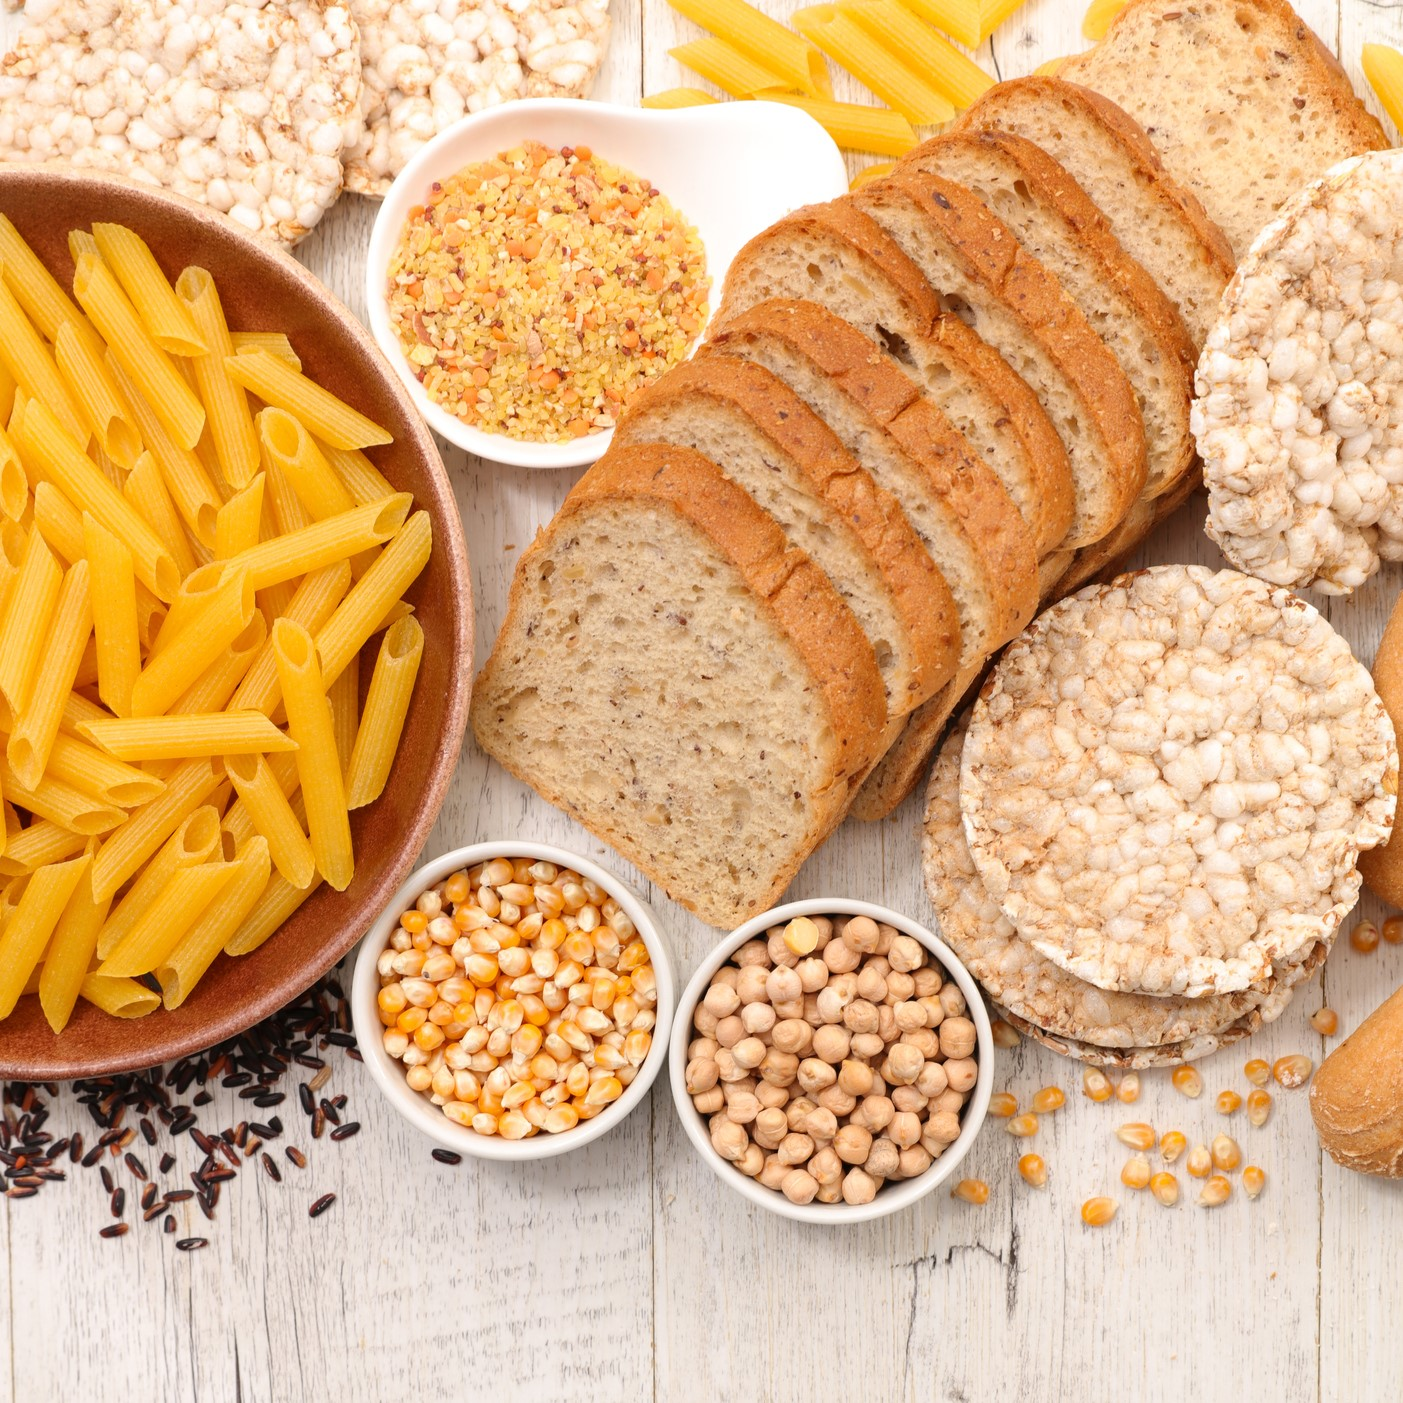 Products containing gluten on wooden table, including pasta, bread, and rice cakes.